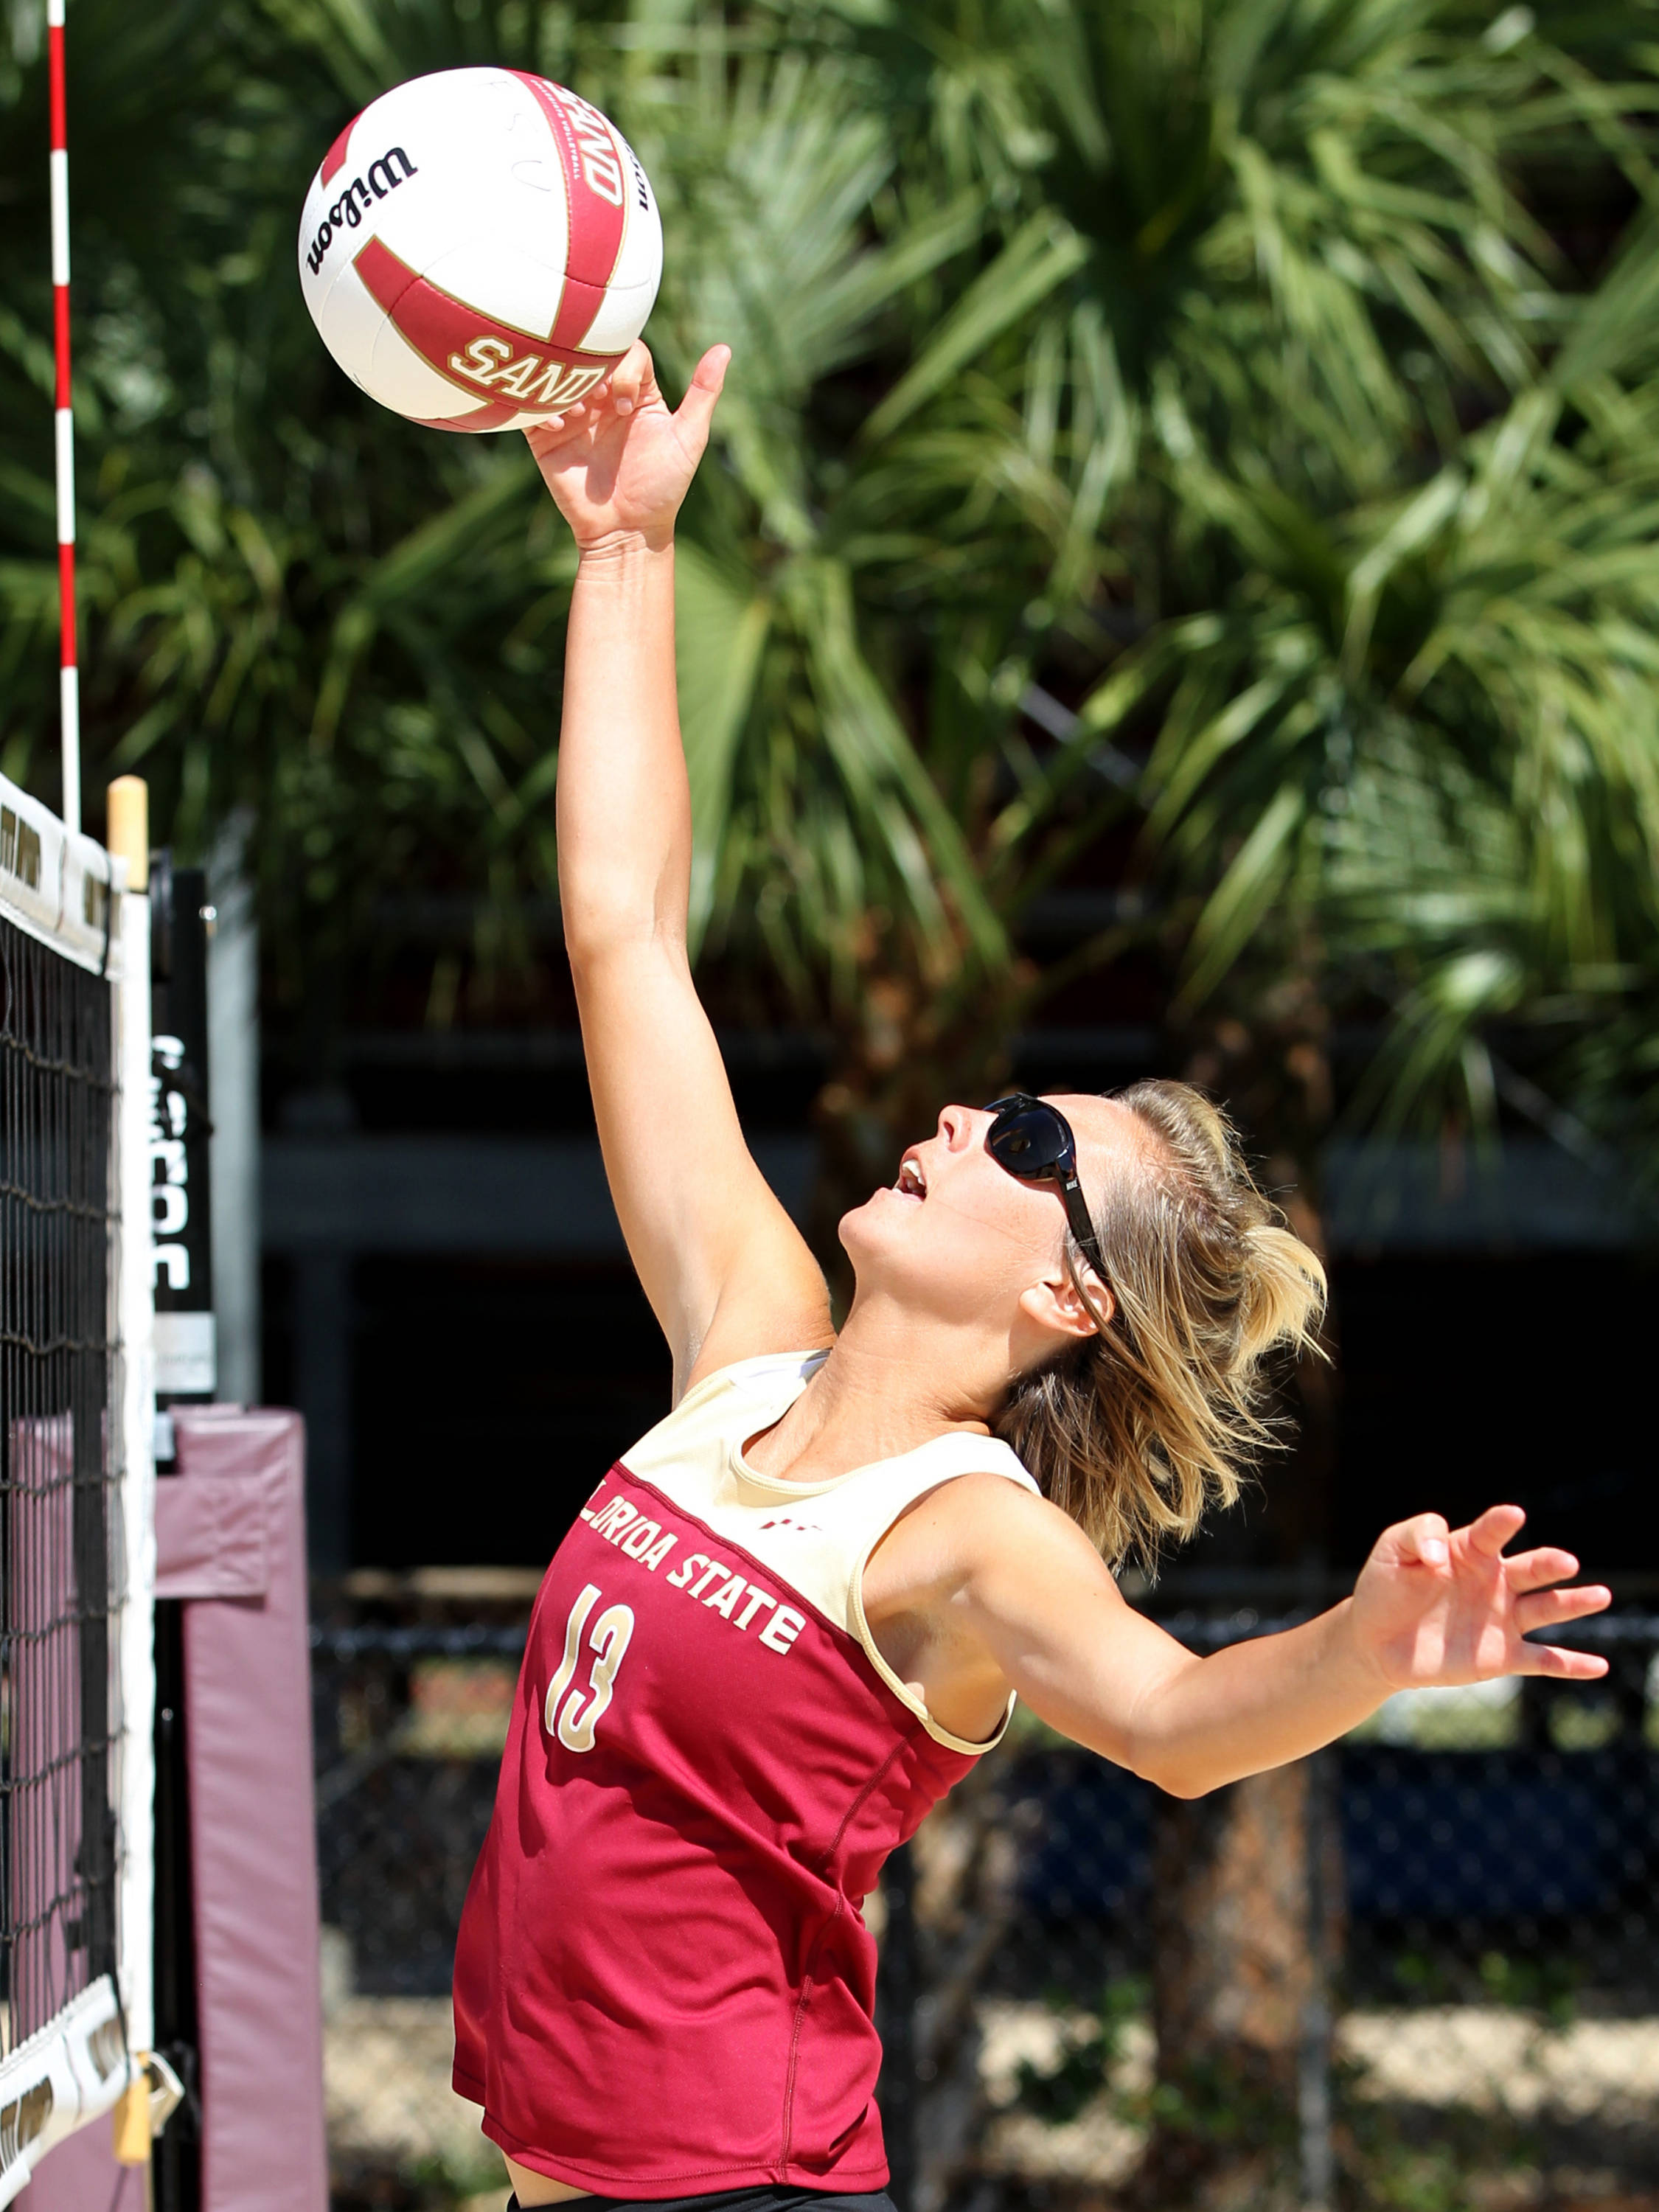 Jeassica McGregor, Sand Volleyball Tournament,  04/20/13 . (Photo by Steve Musco)